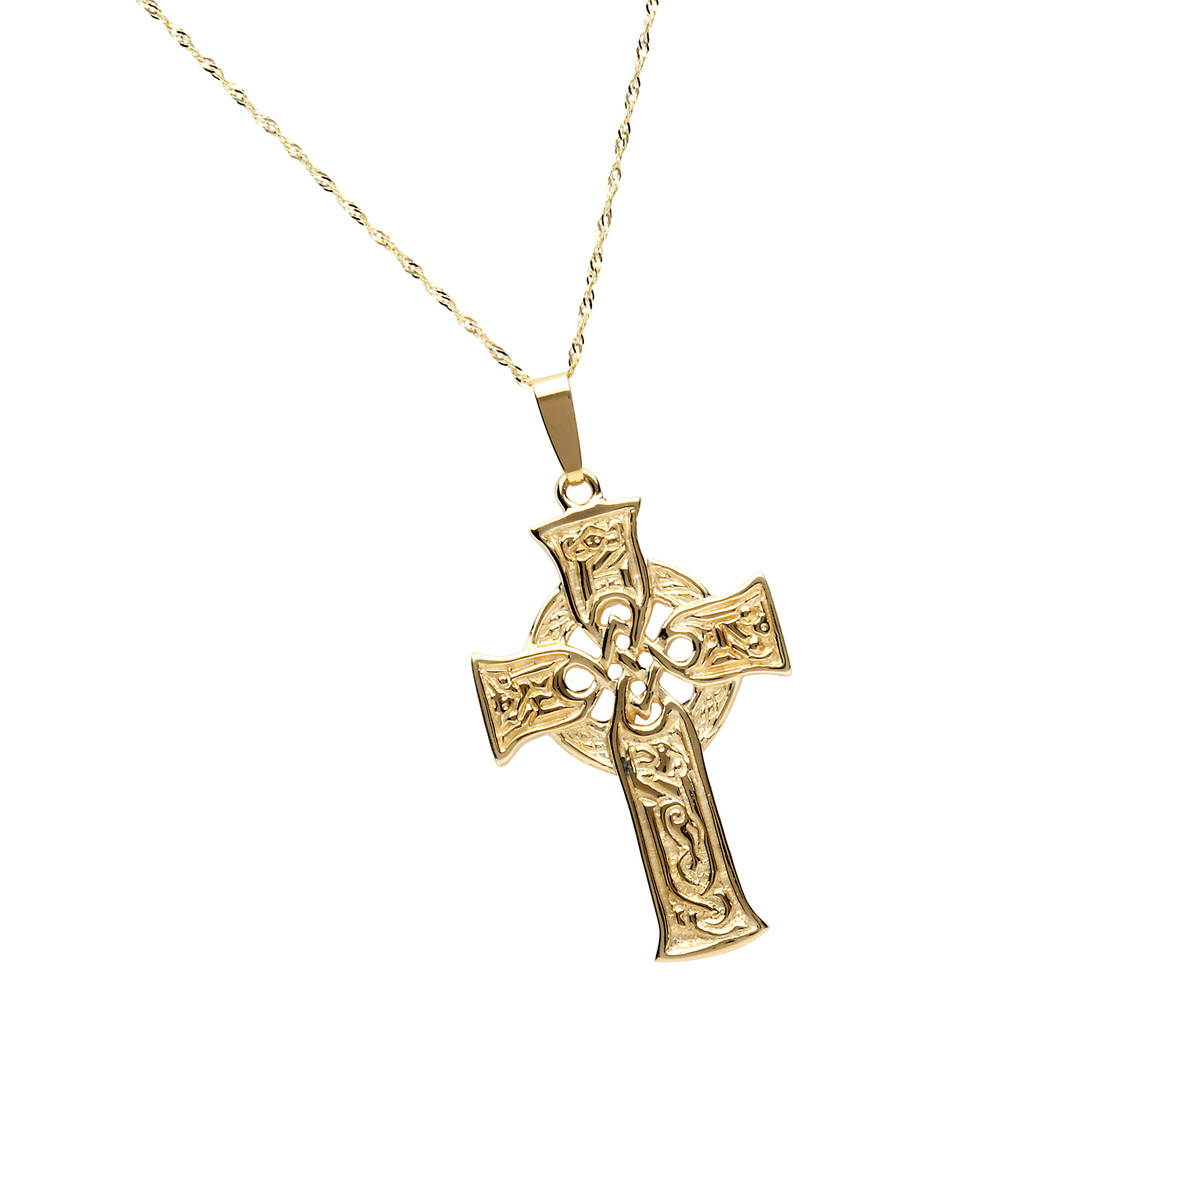 10 carat yellow gold carved scripture cross pendant.